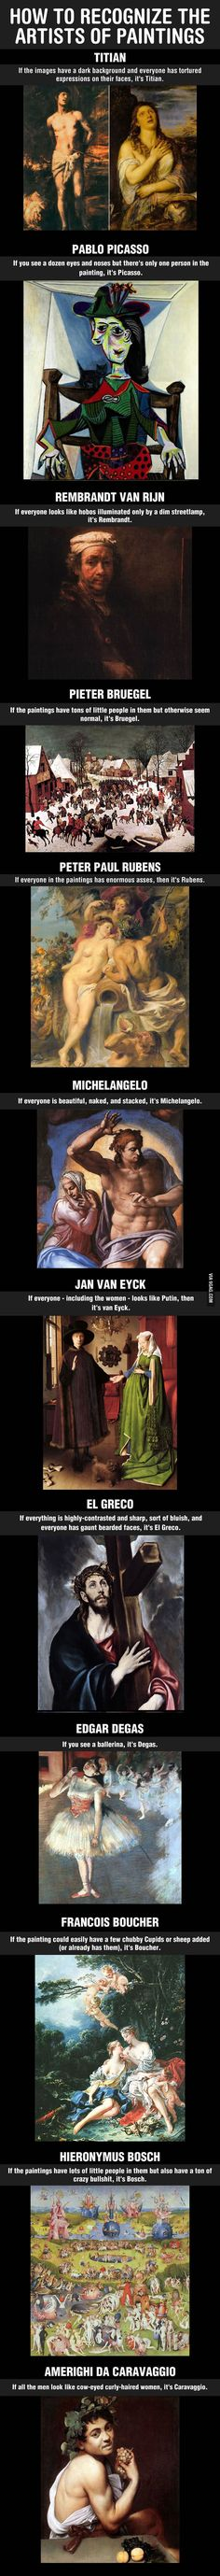 How To Appear Knowledgeable In Art Despite Knowing Nothing About It - 9GAG